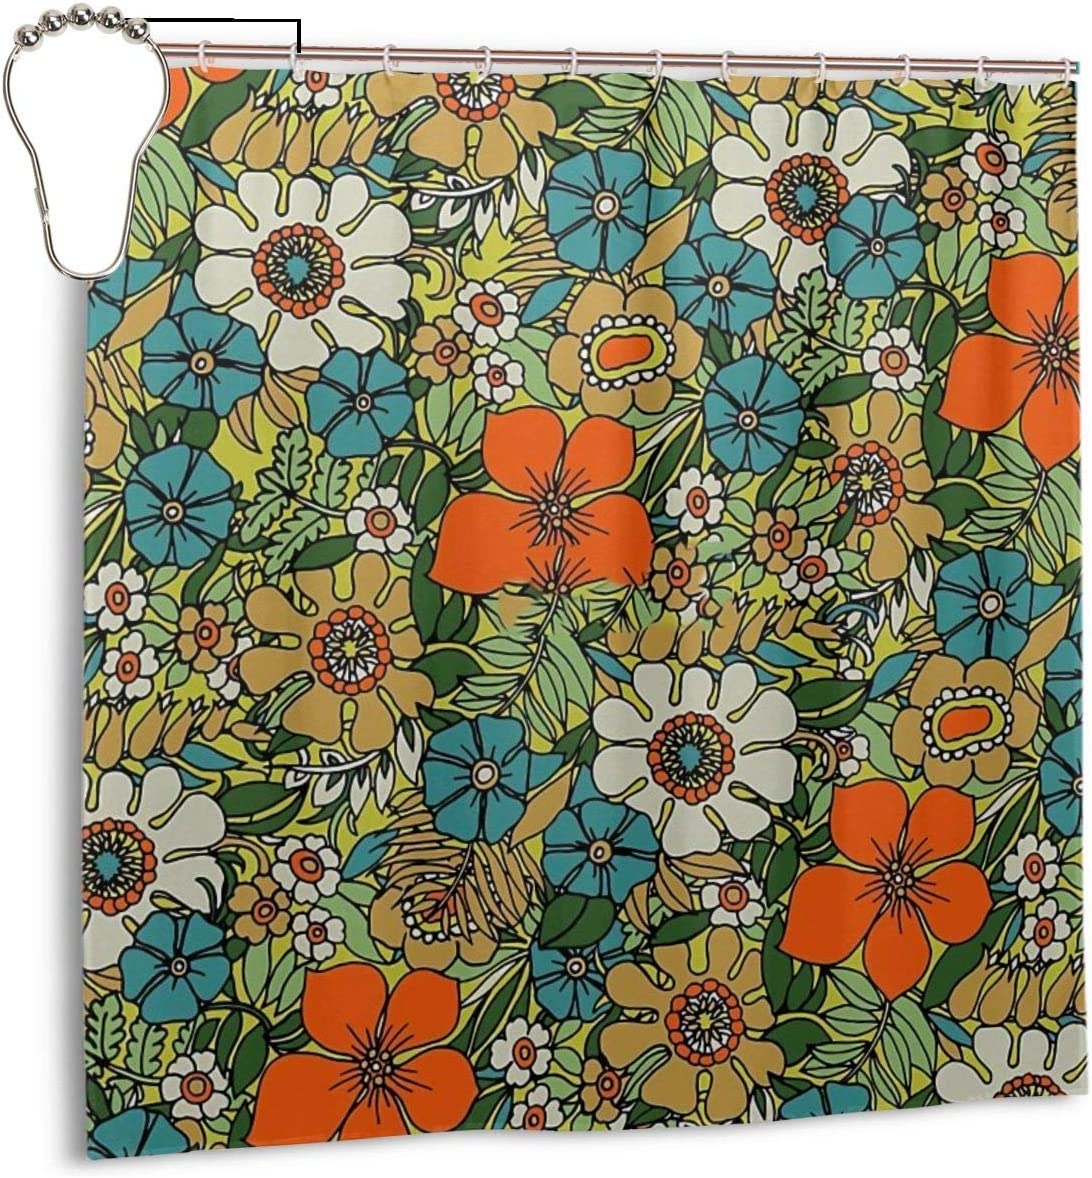 Noick 70s Plate Boutique Shower Curtain Hooks Polyester Home Decor 72x72inch